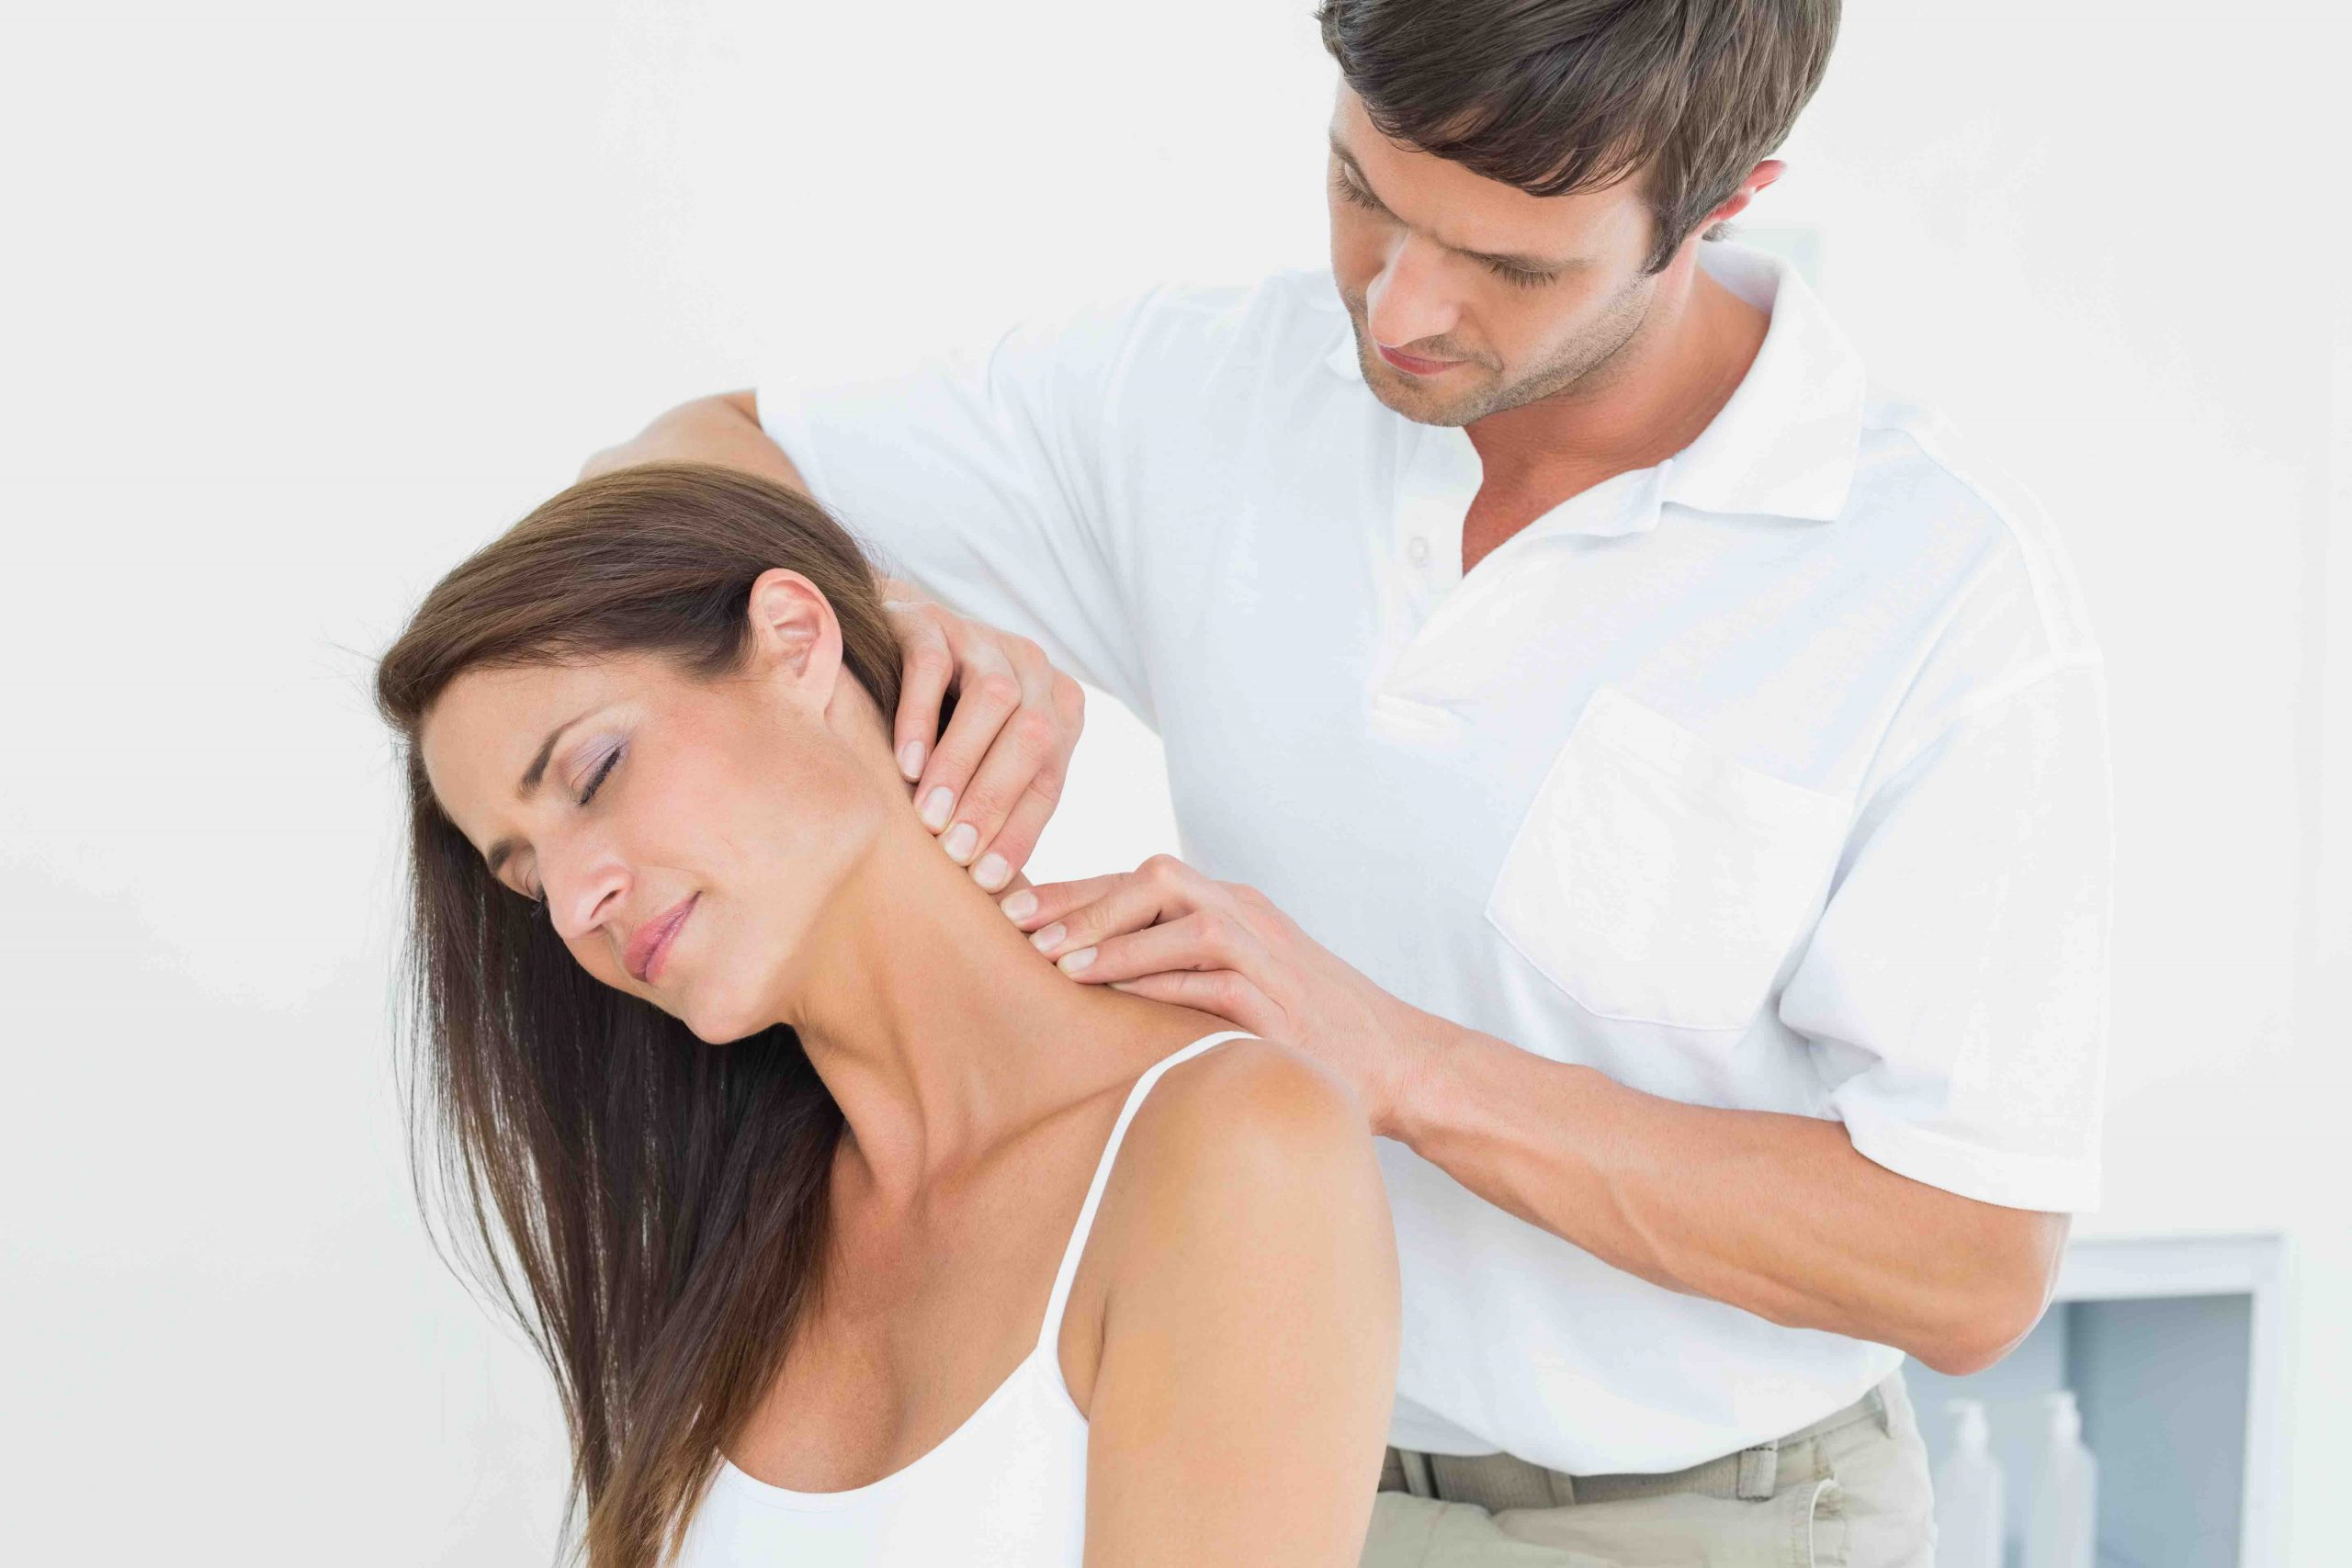 Image of manual chiropractic techniques